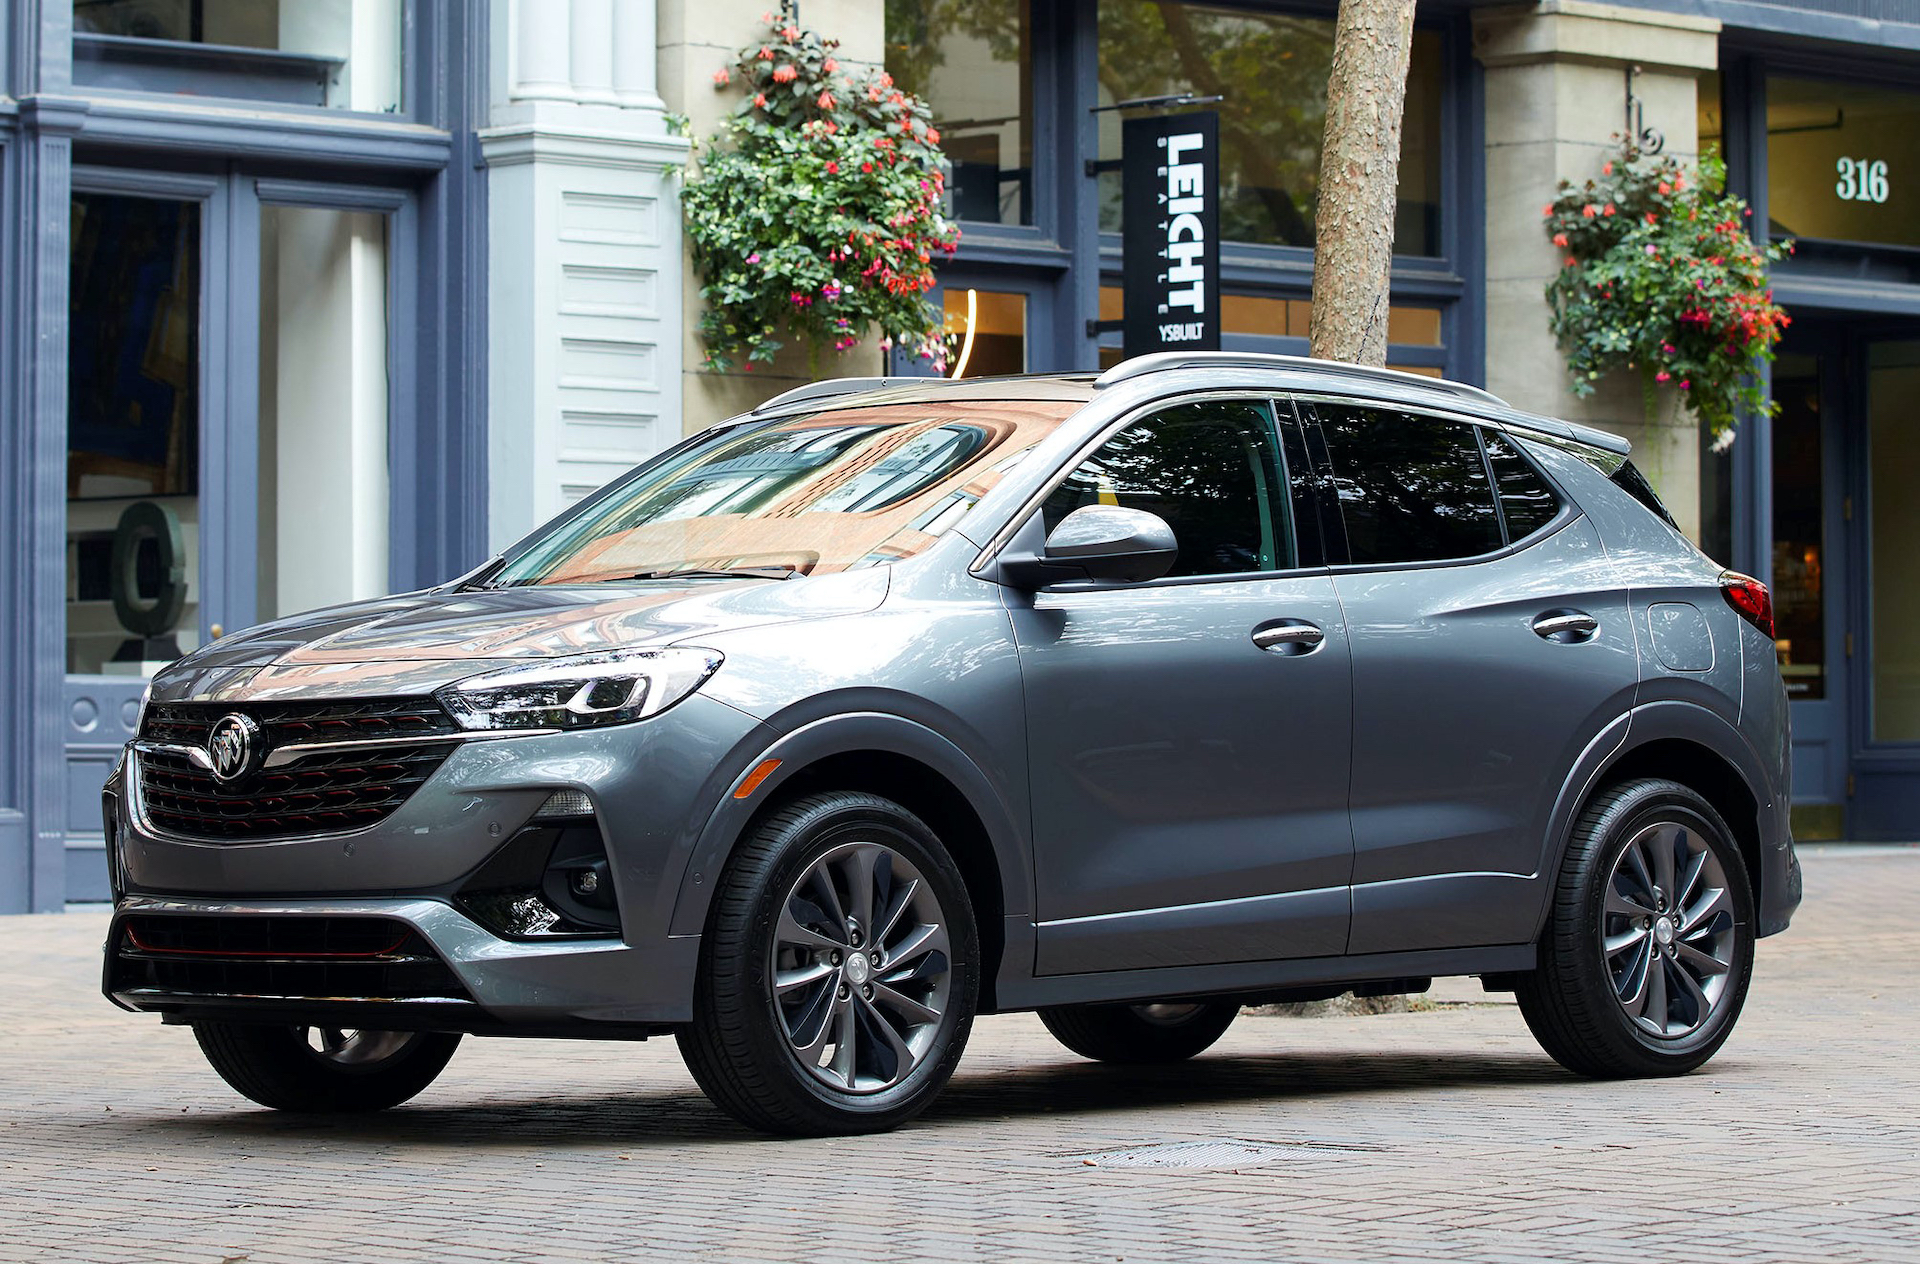 2021 Buick Encore Review, Ratings, Specs, Prices, And Photos New 2021 Buick Encore Gx Build And Price, Build, Colors